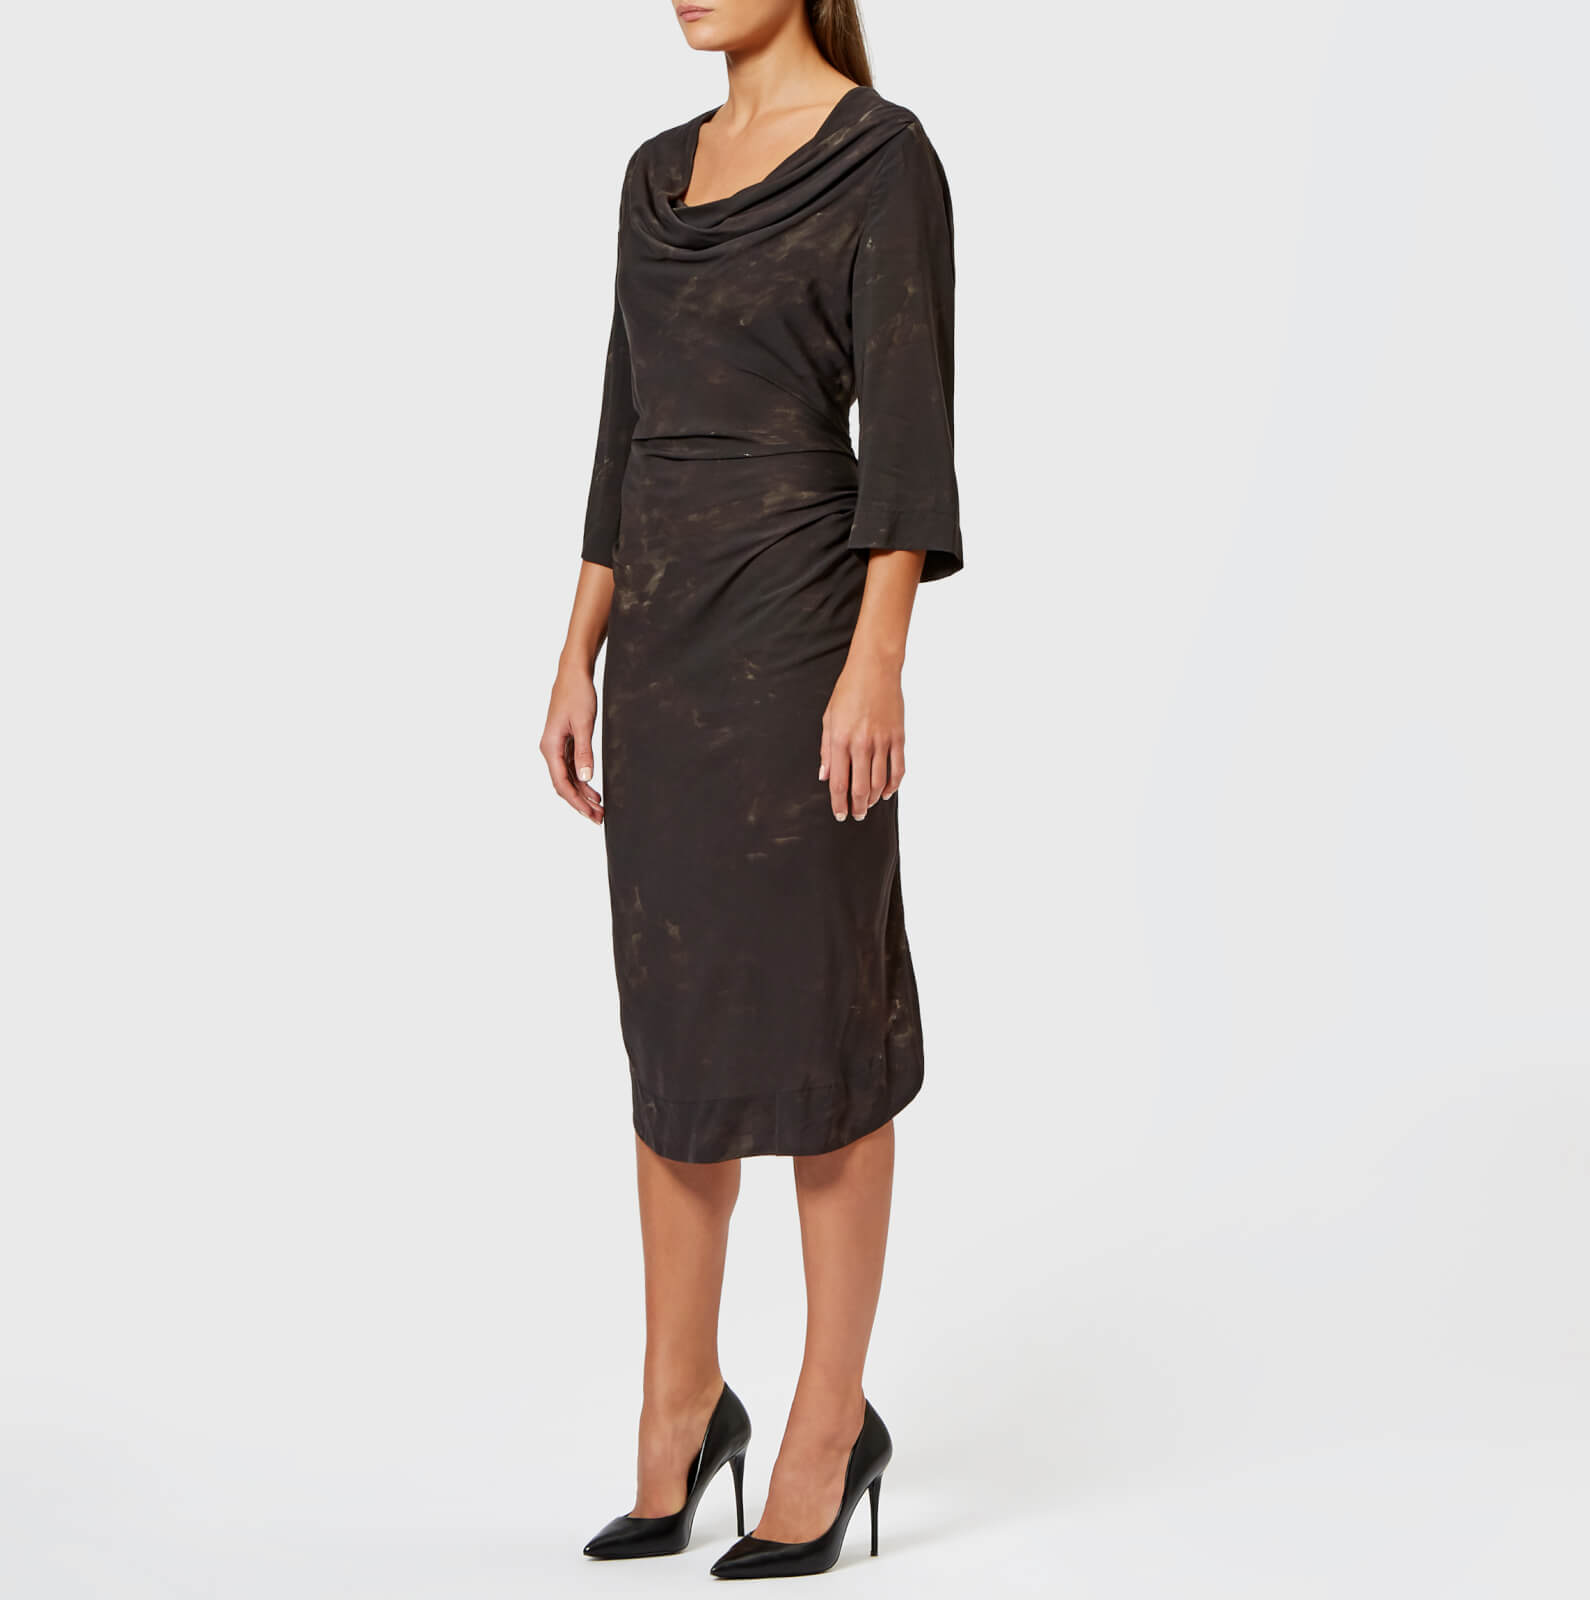 b7835e6e103b Vivienne Westwood Anglomania Women's Virginia Dress - Black - Free UK  Delivery over £50